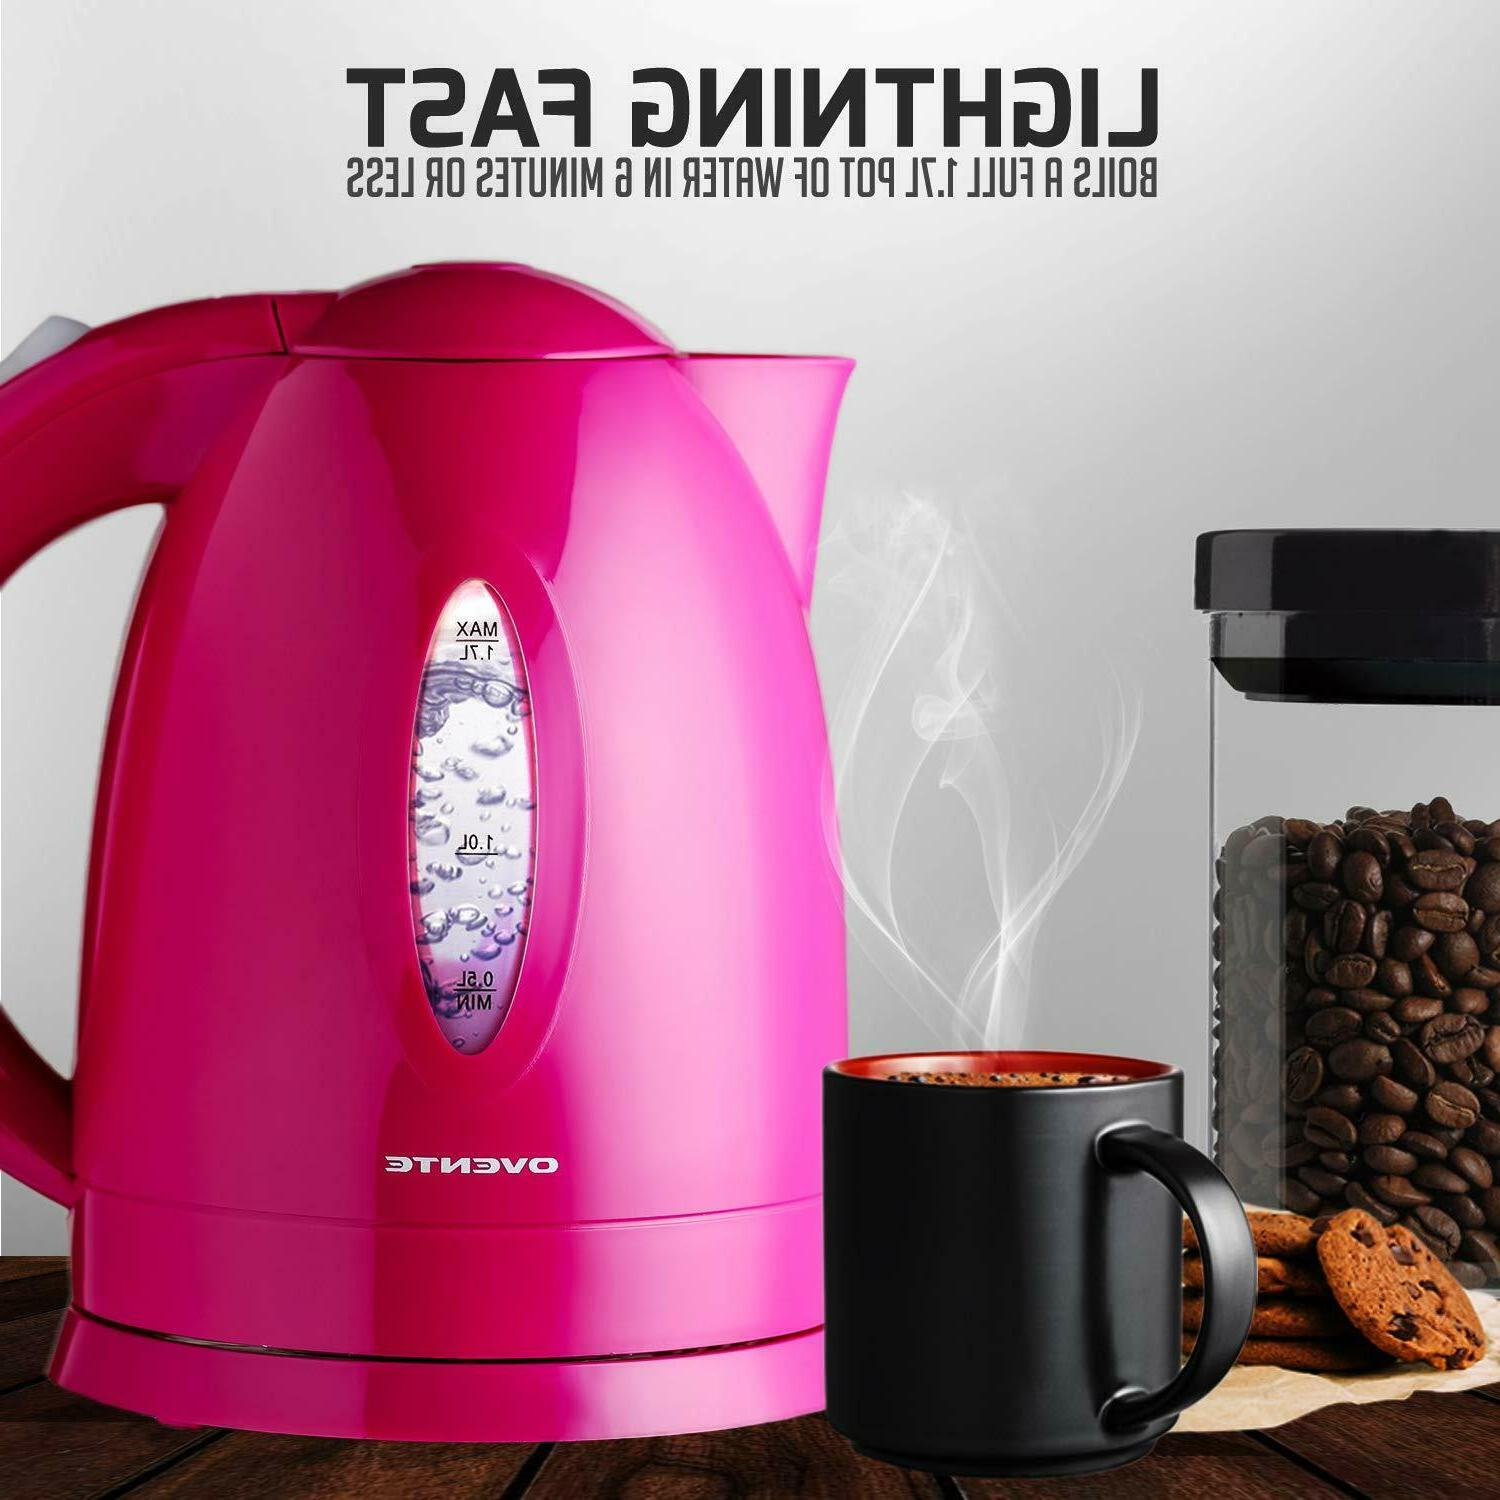 cordless electric tea coffee kettle hot water